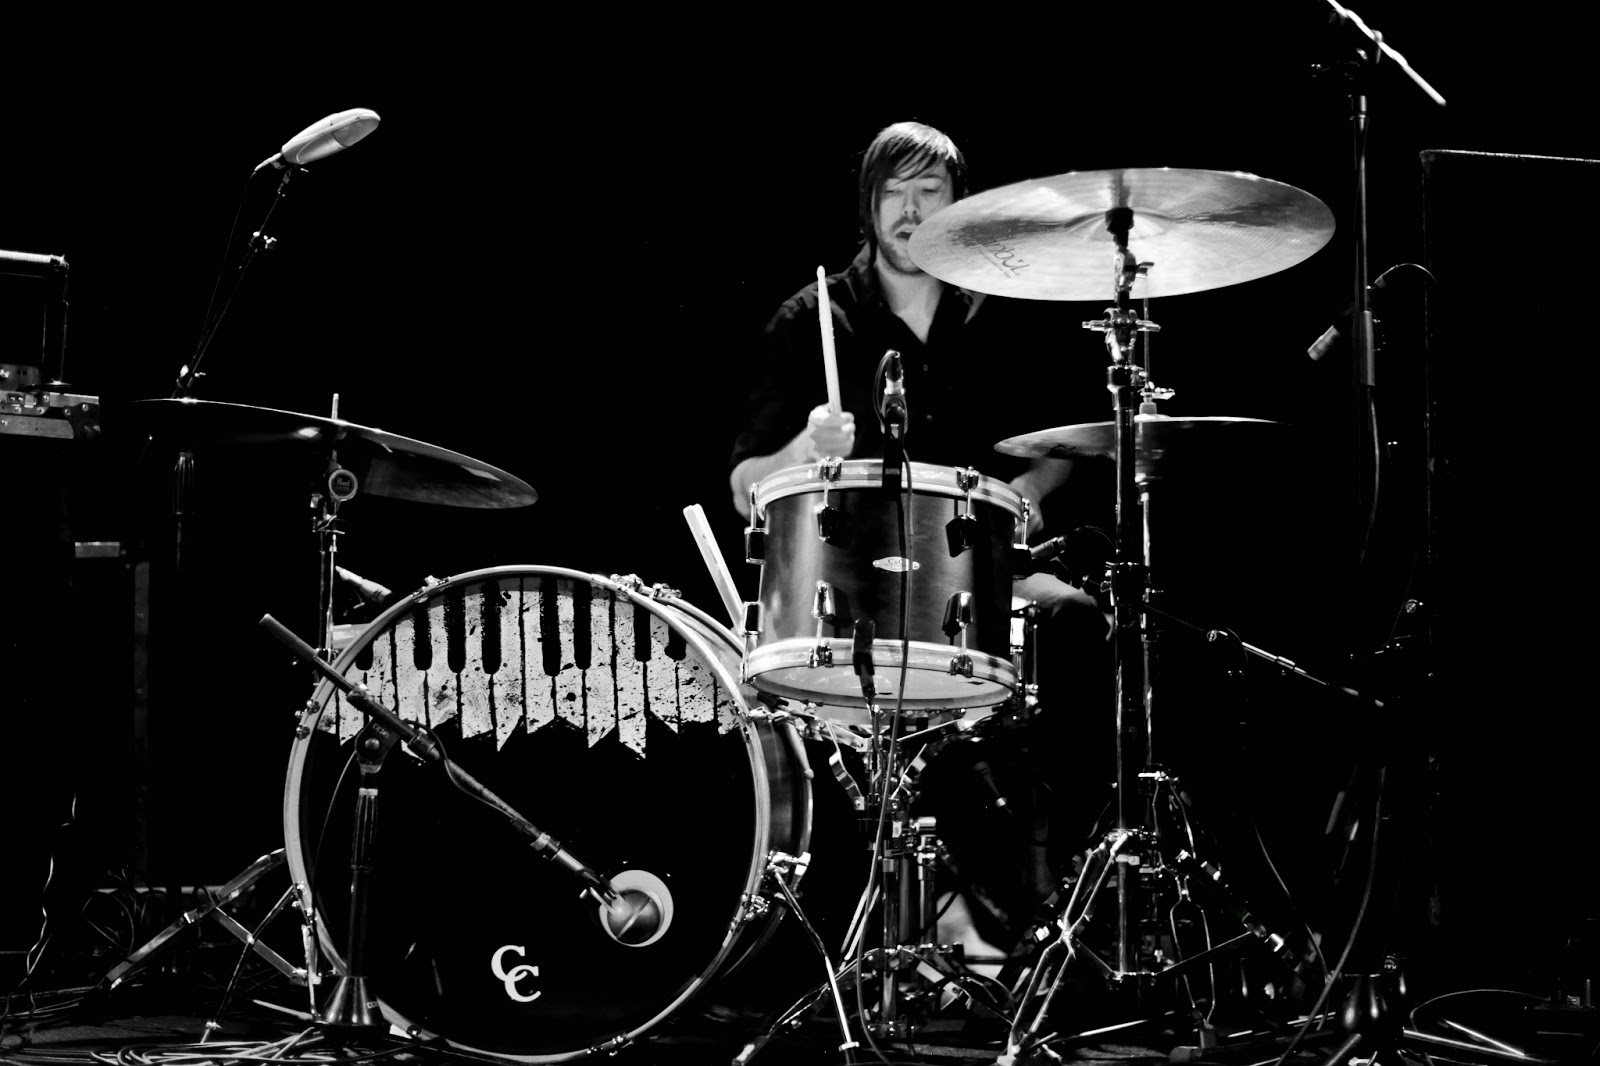 The drummer for Cursive playing drums during the 2/10/15 show at Bluebird Theater.